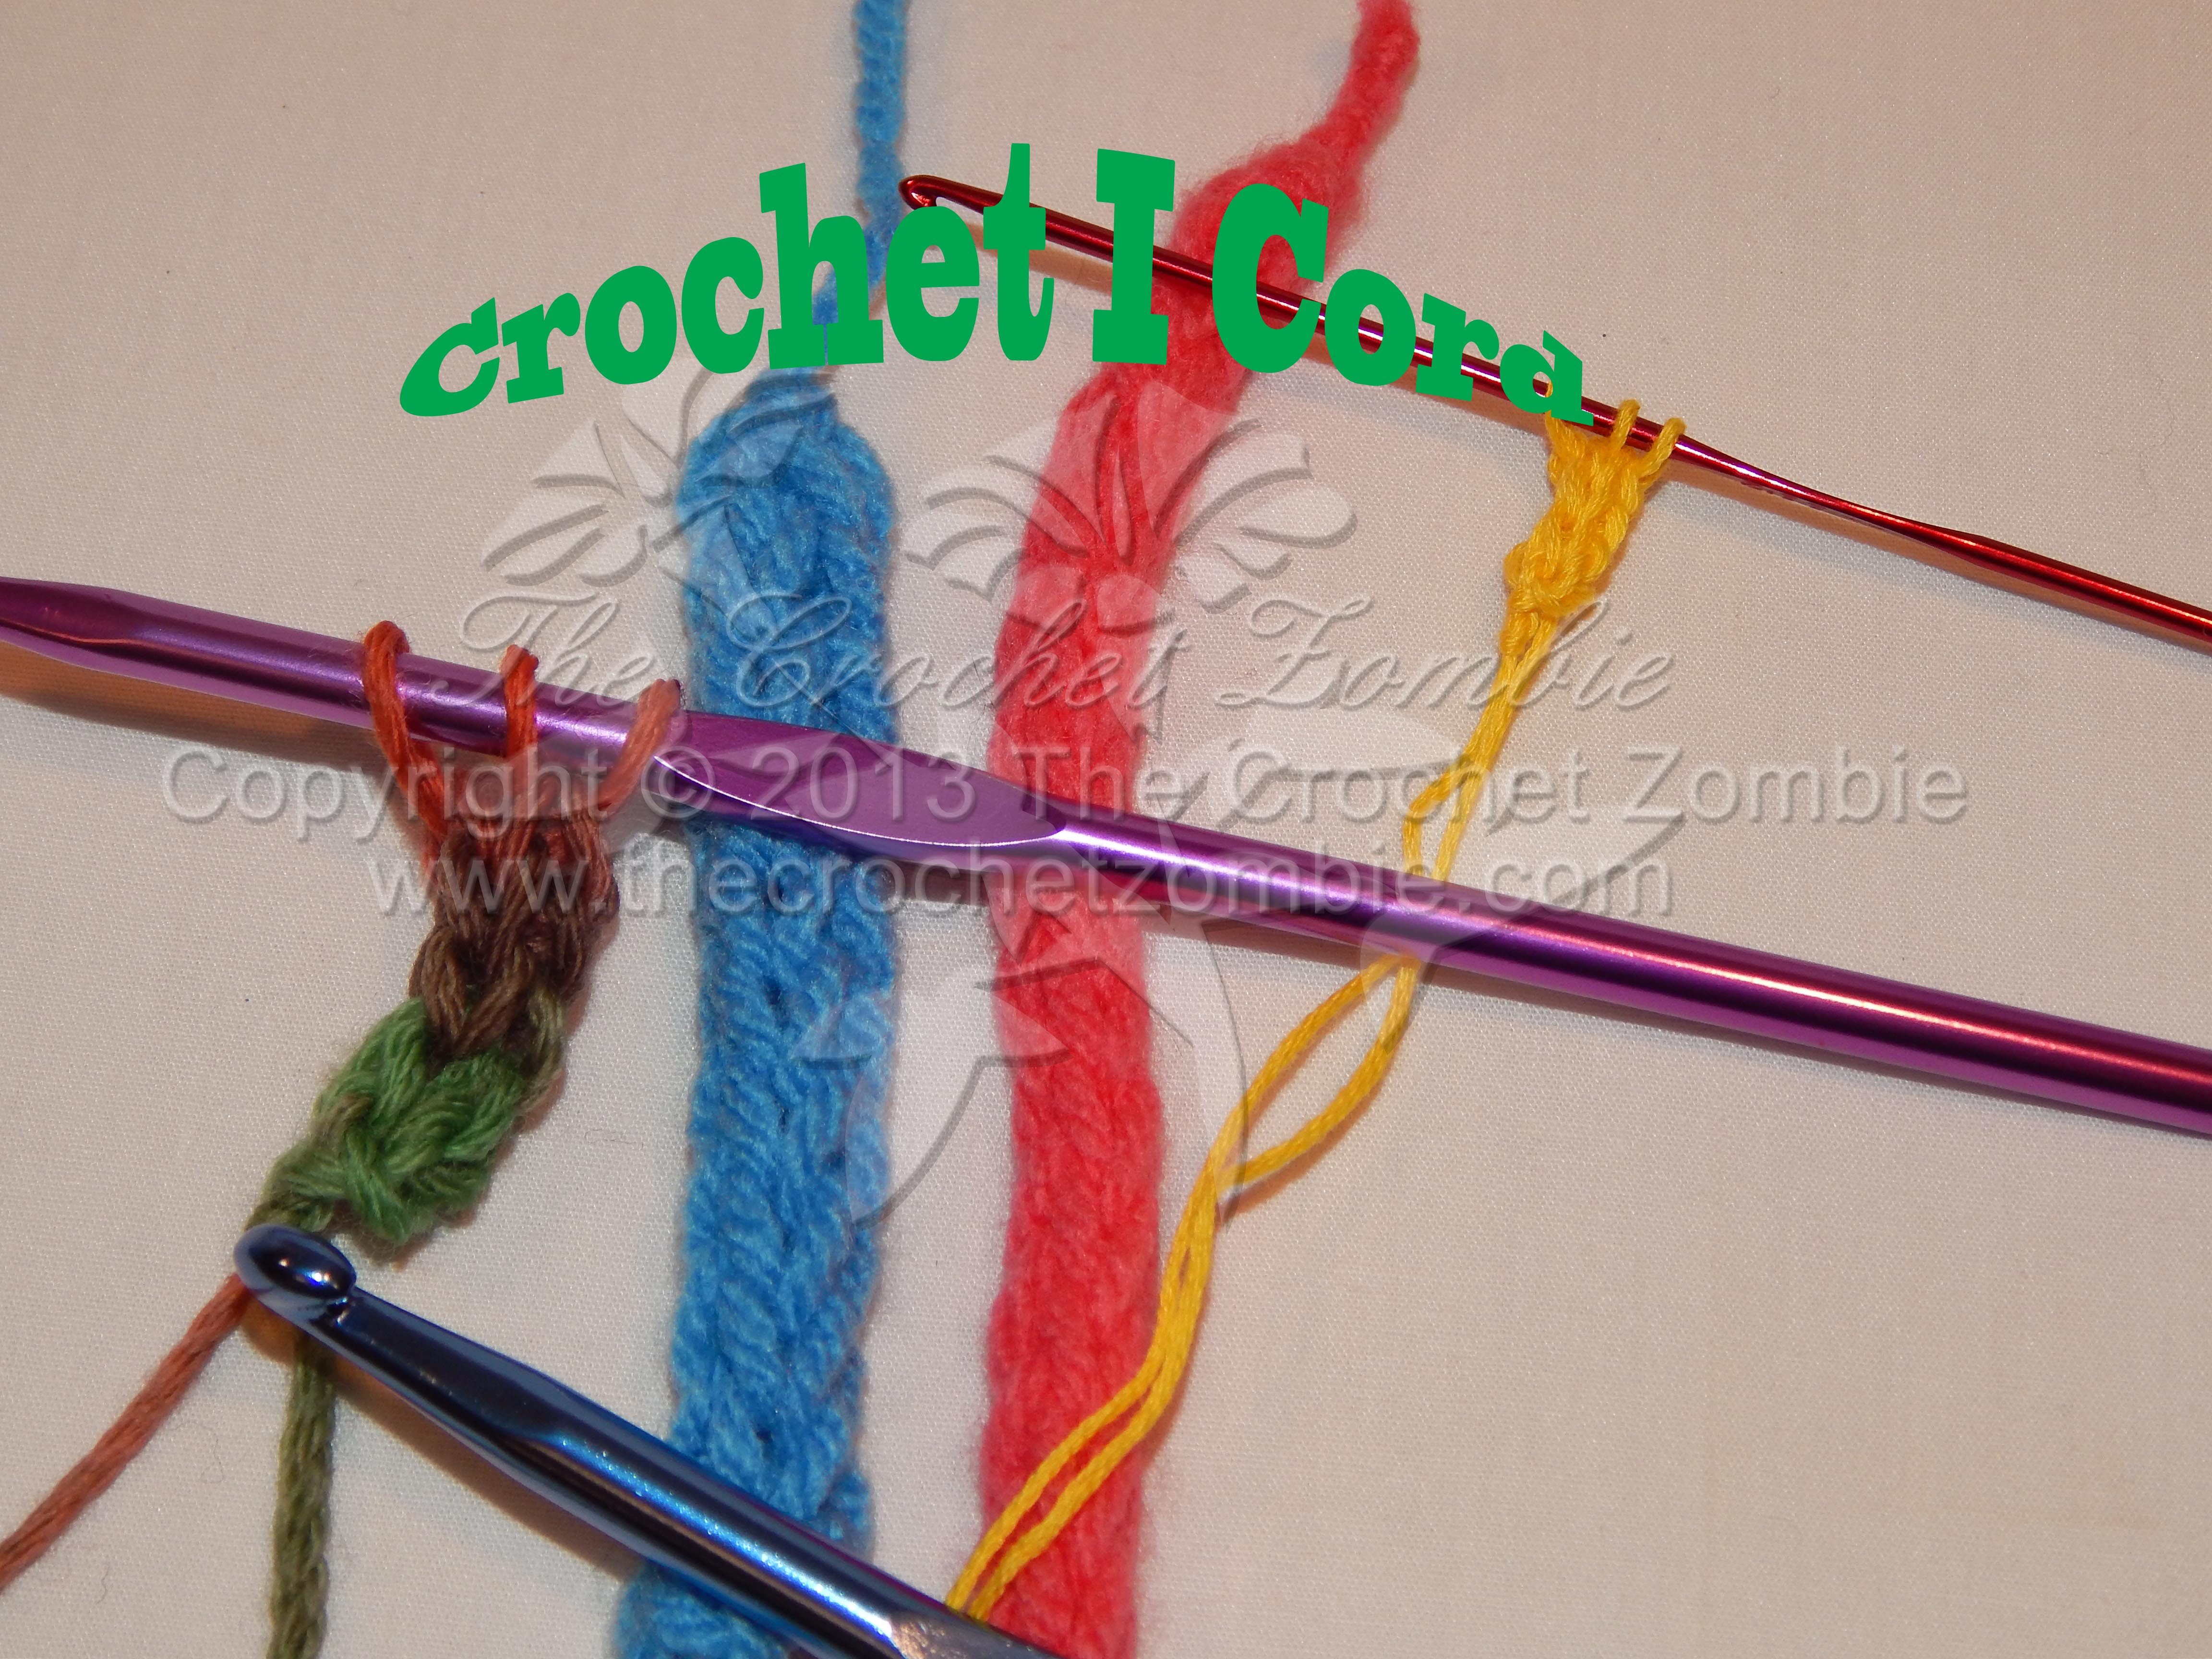 Best Of Crochet I Cord Crochet Cords Of Attractive 49 Ideas Crochet Cords